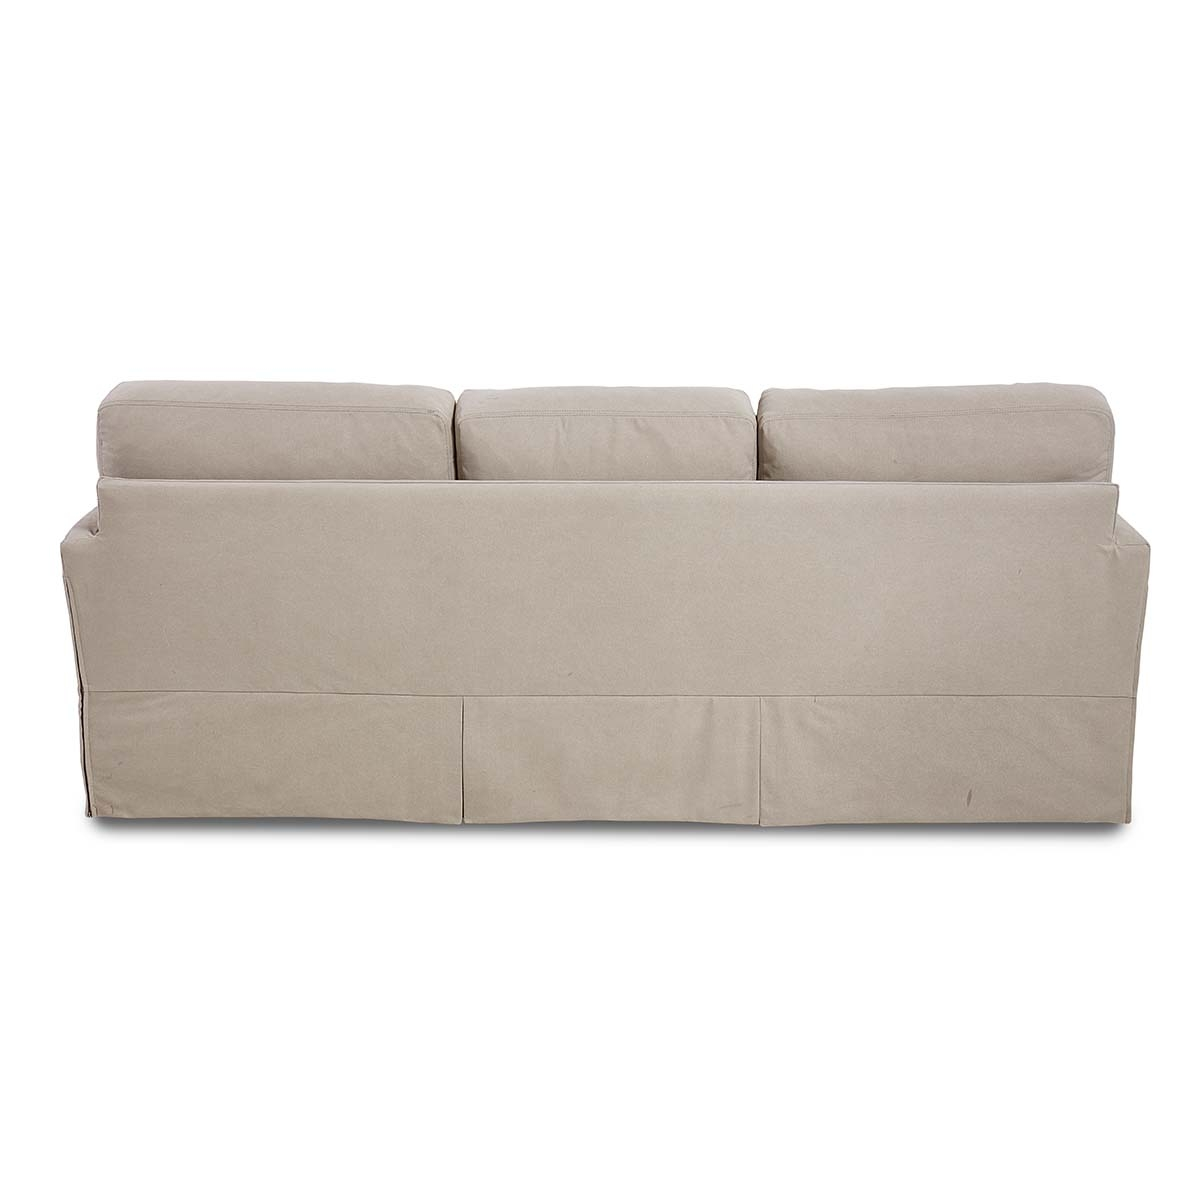 Gmk Home & Living Sofa Quality And Customizable Furniture Store Sierra Sofa